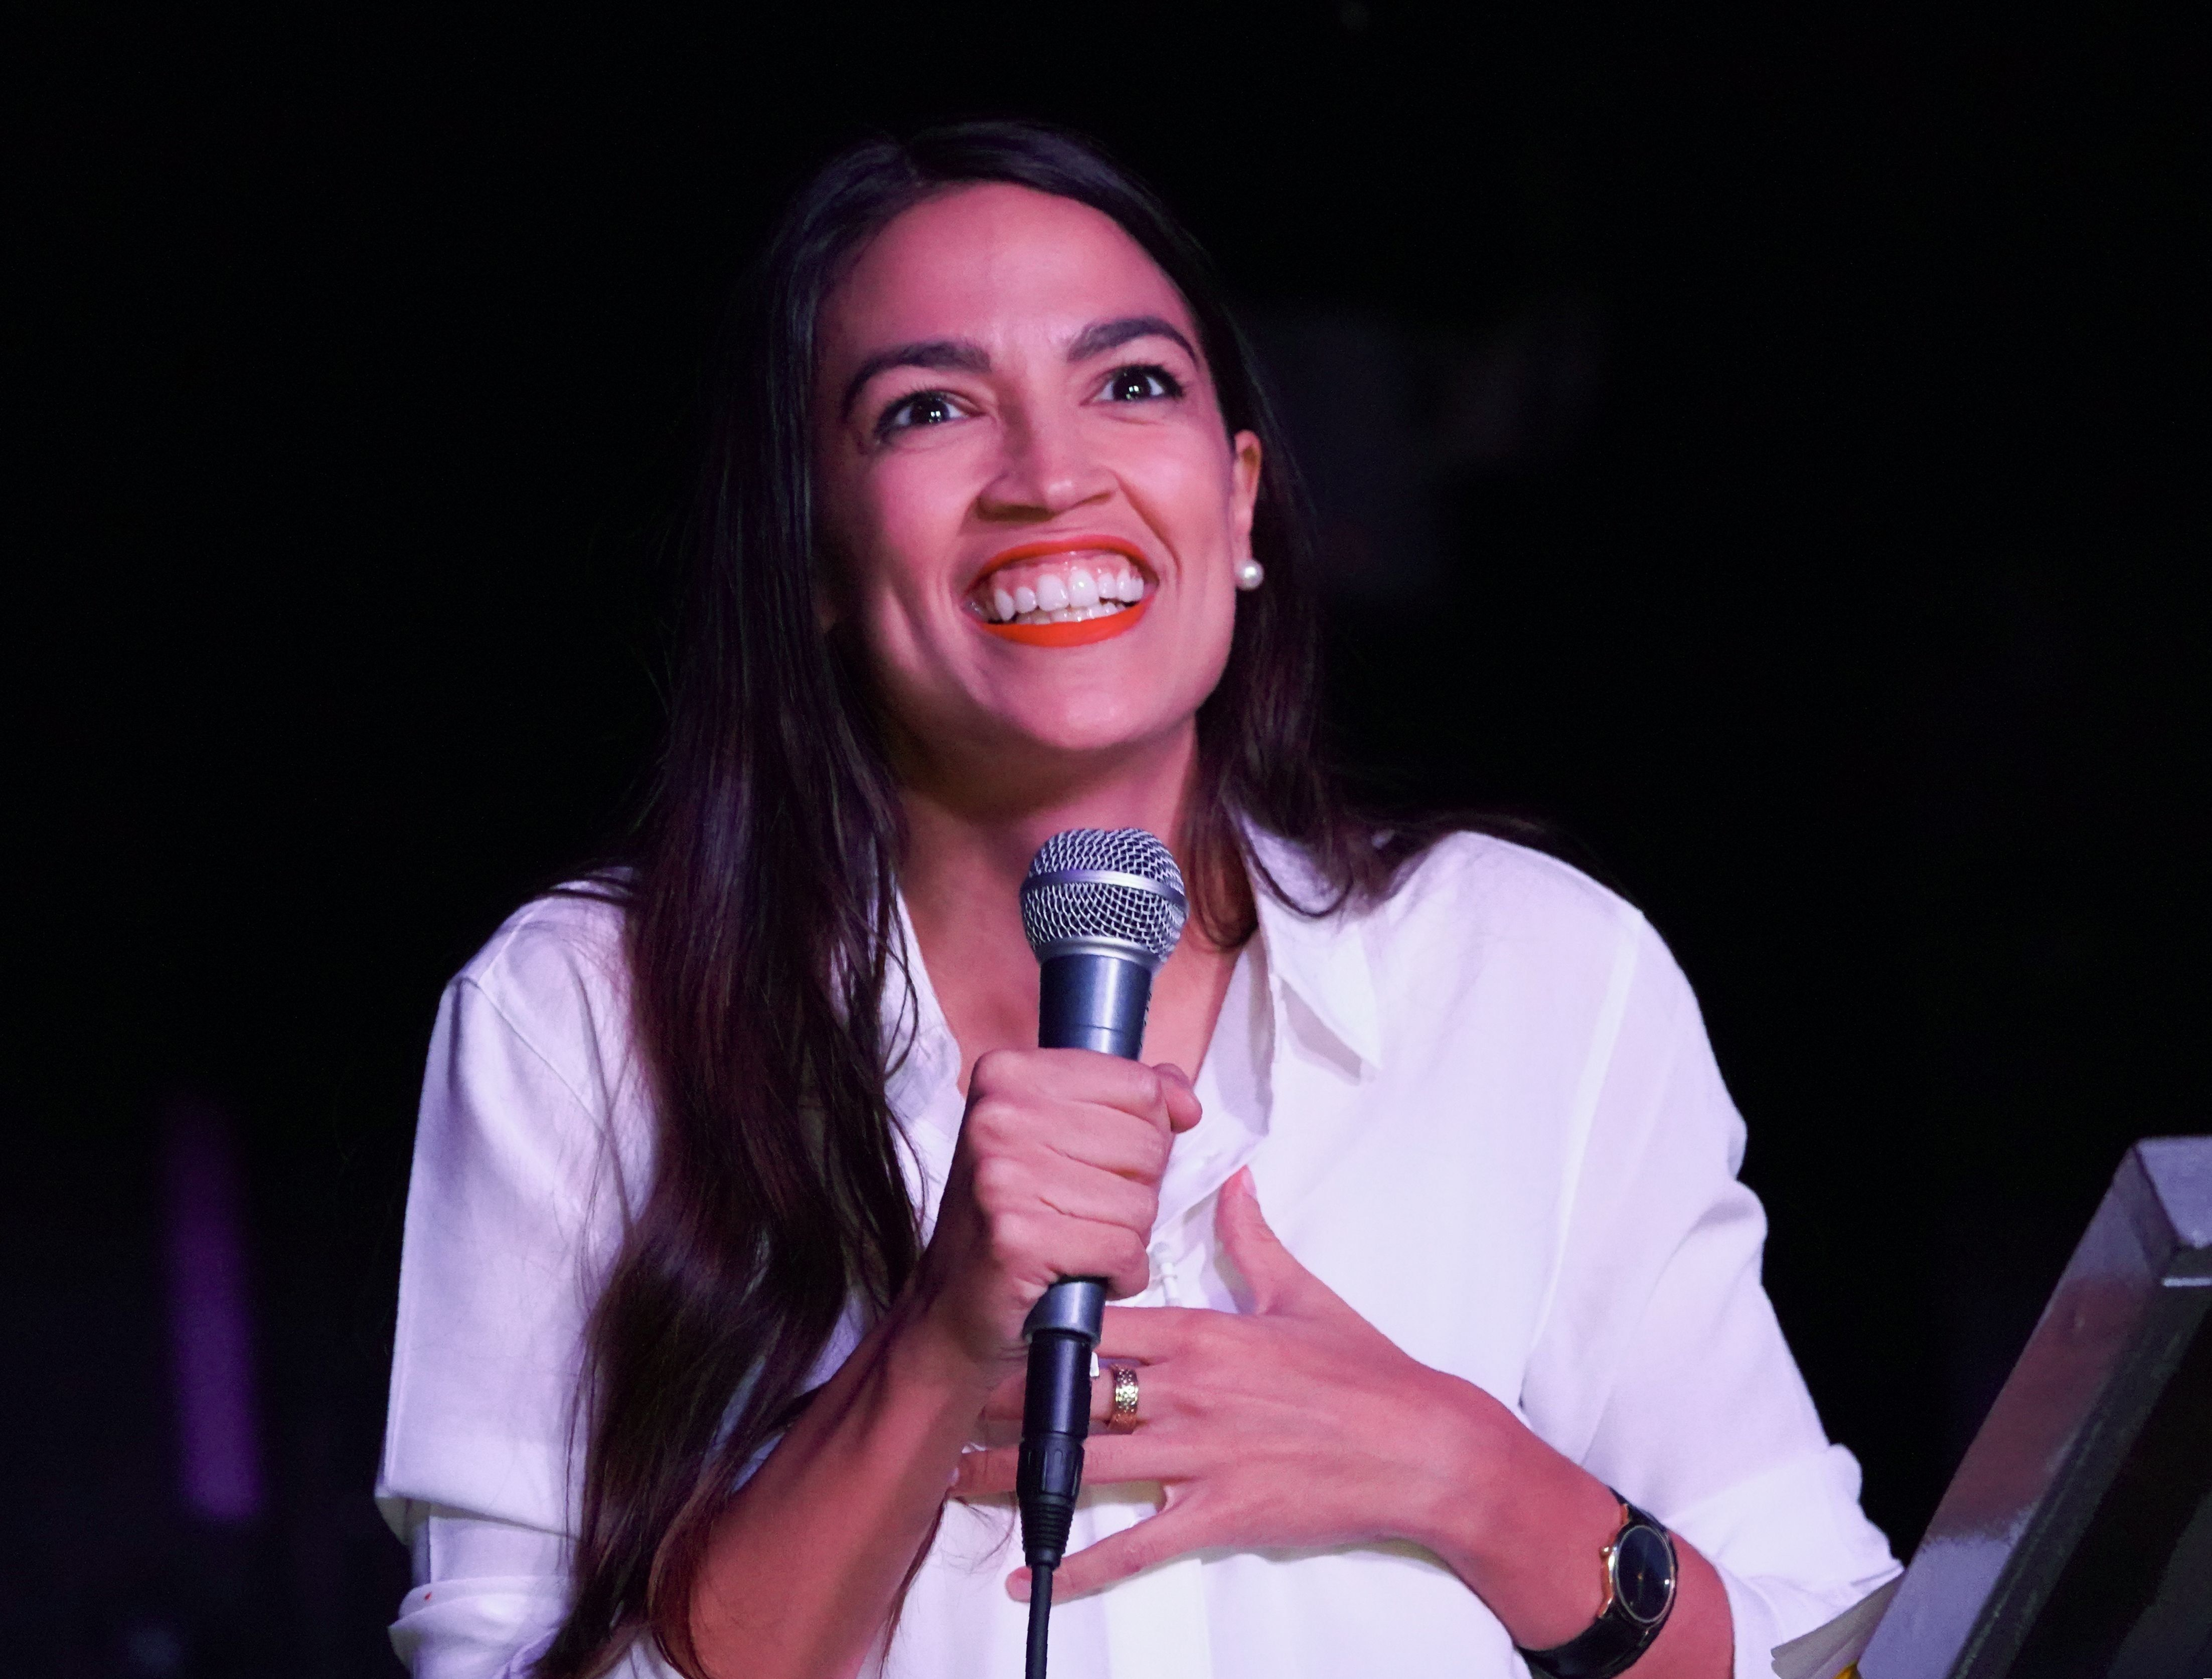 Freshman Rep. Alexandria Ocasio-Cortez (D-N.Y.) has suggested bringing back a top marginal tax rate of 70 percent for the ult